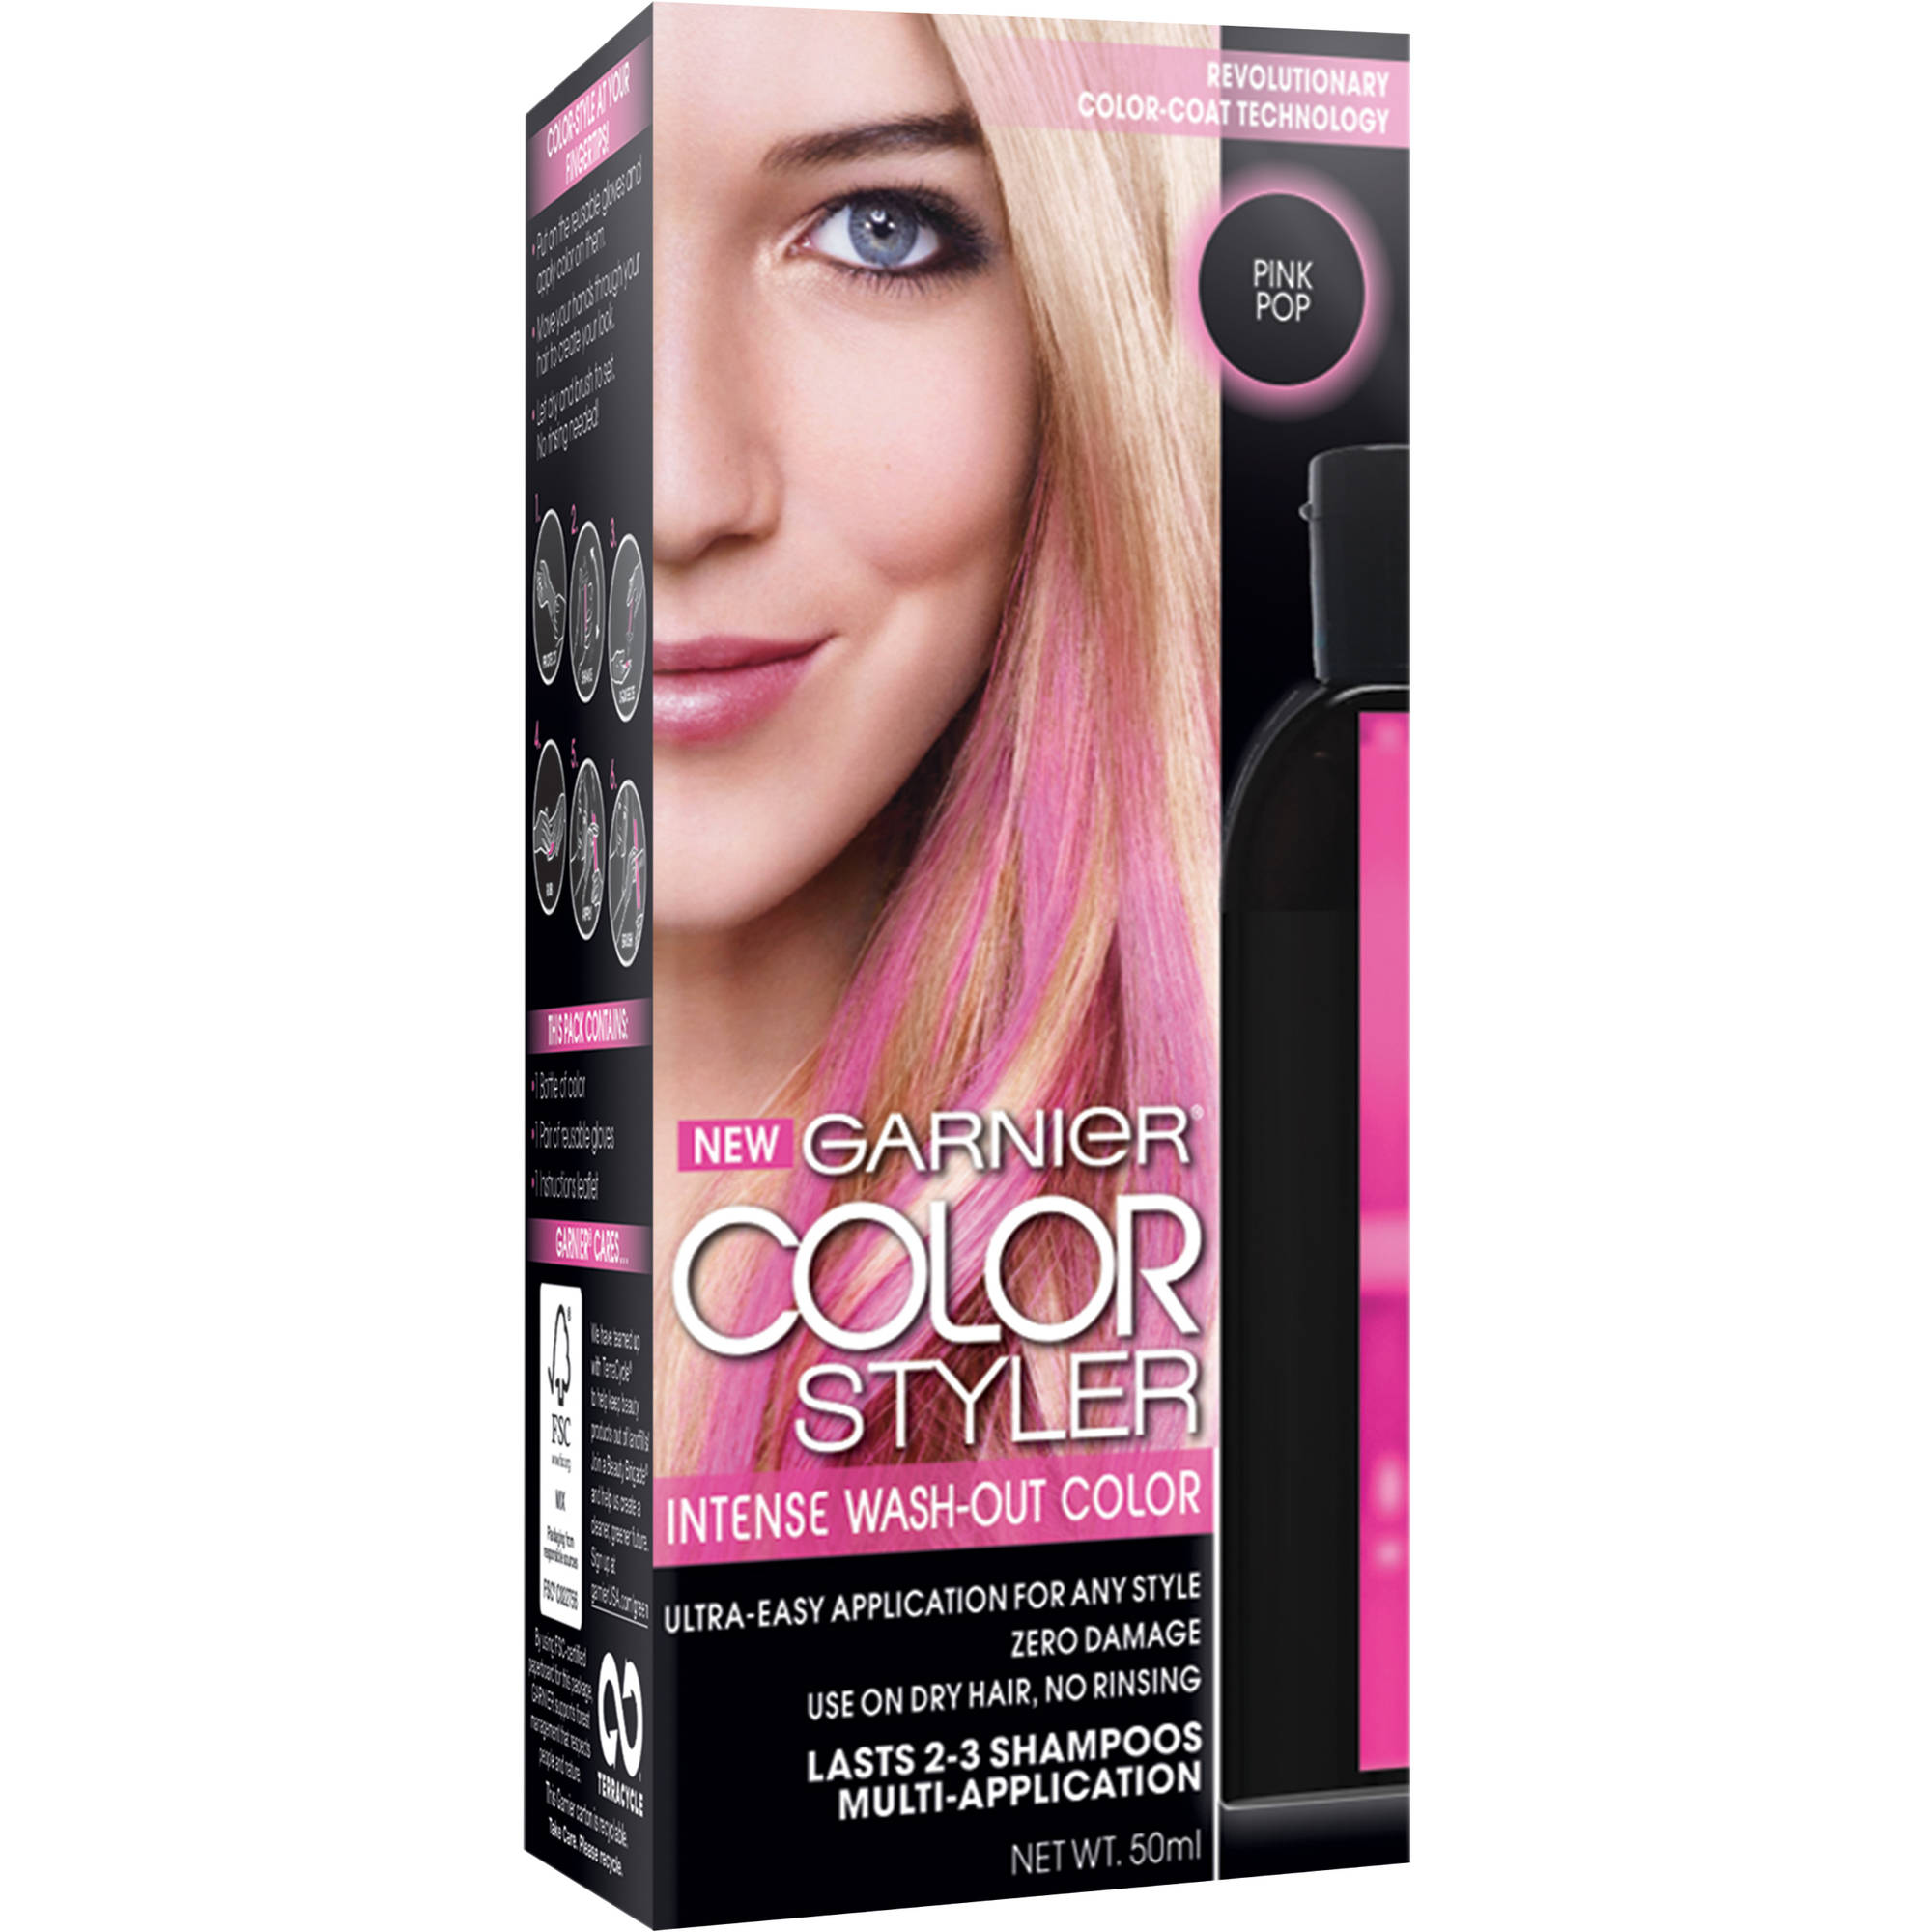 Garnier Color Styler Intense Wash-Out Haircolor, 1.7 fl oz